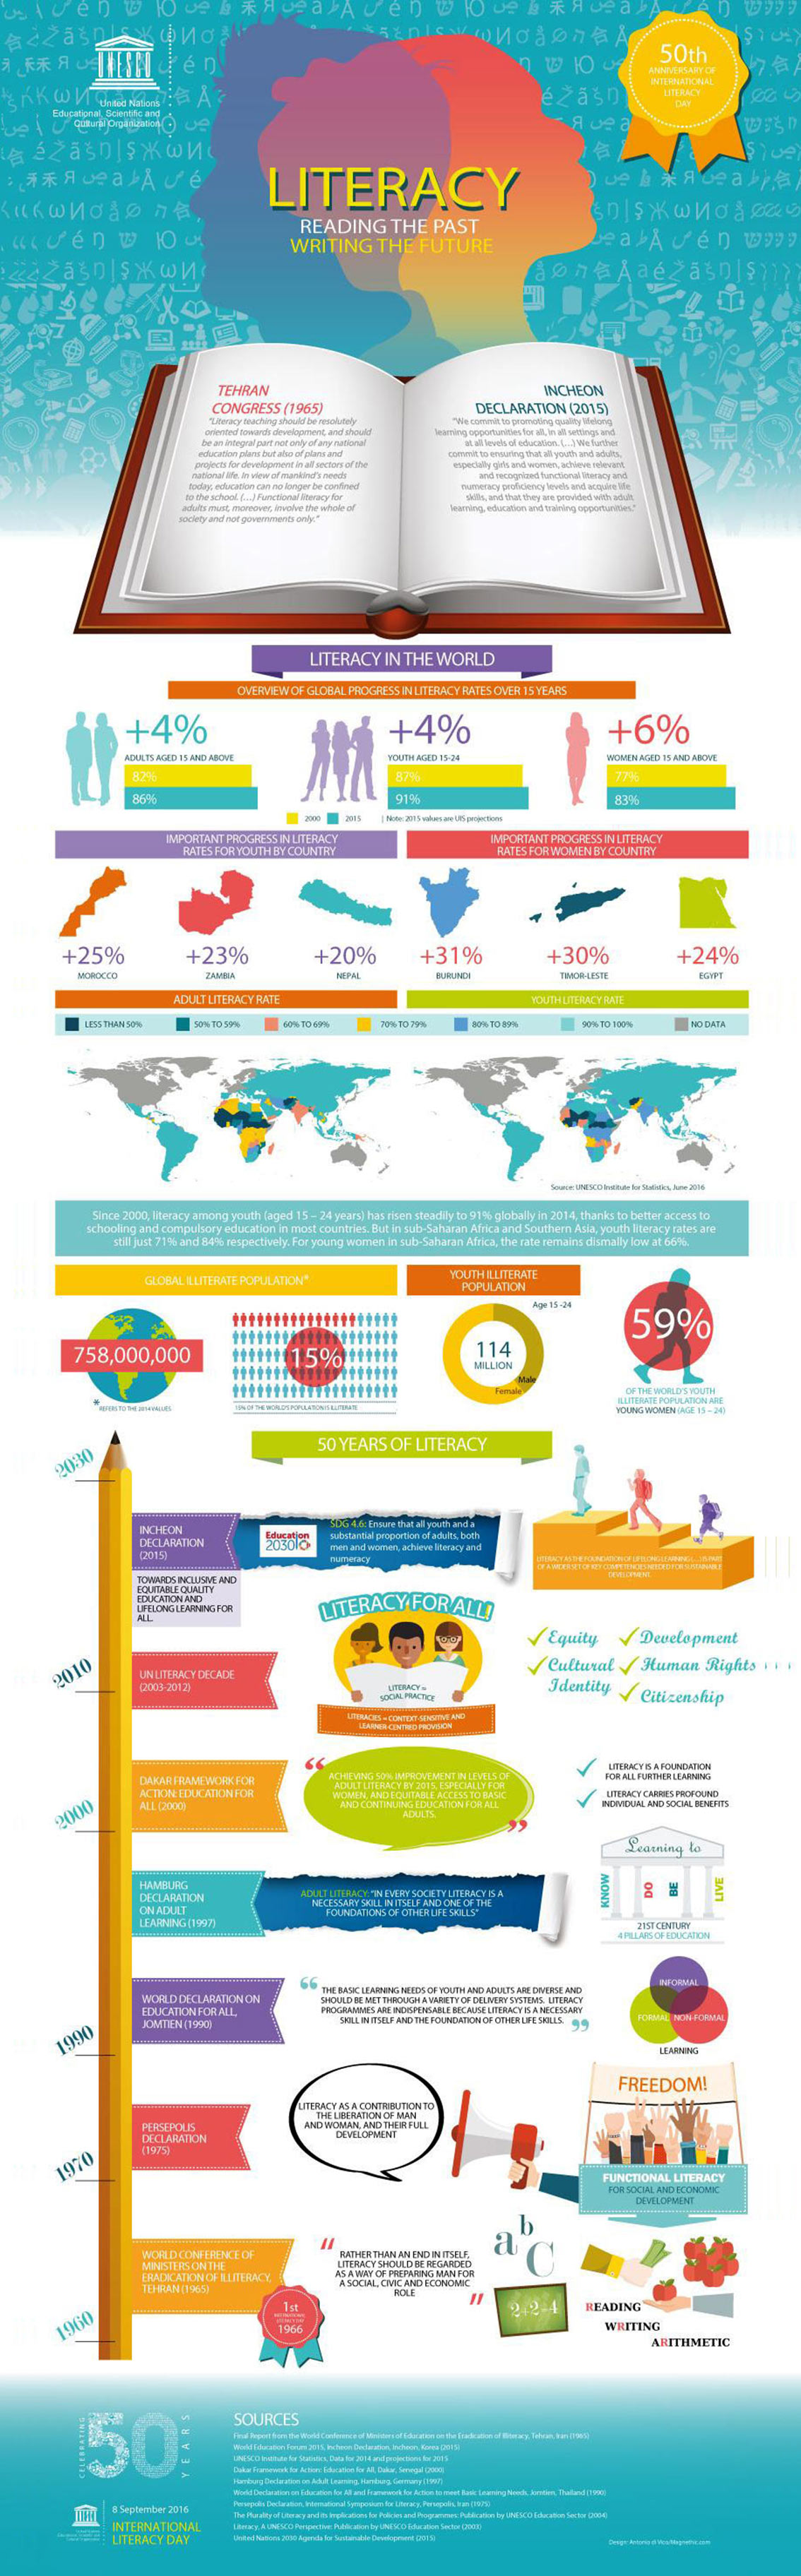 Literacy Reading the Past Writing the Future Infographic